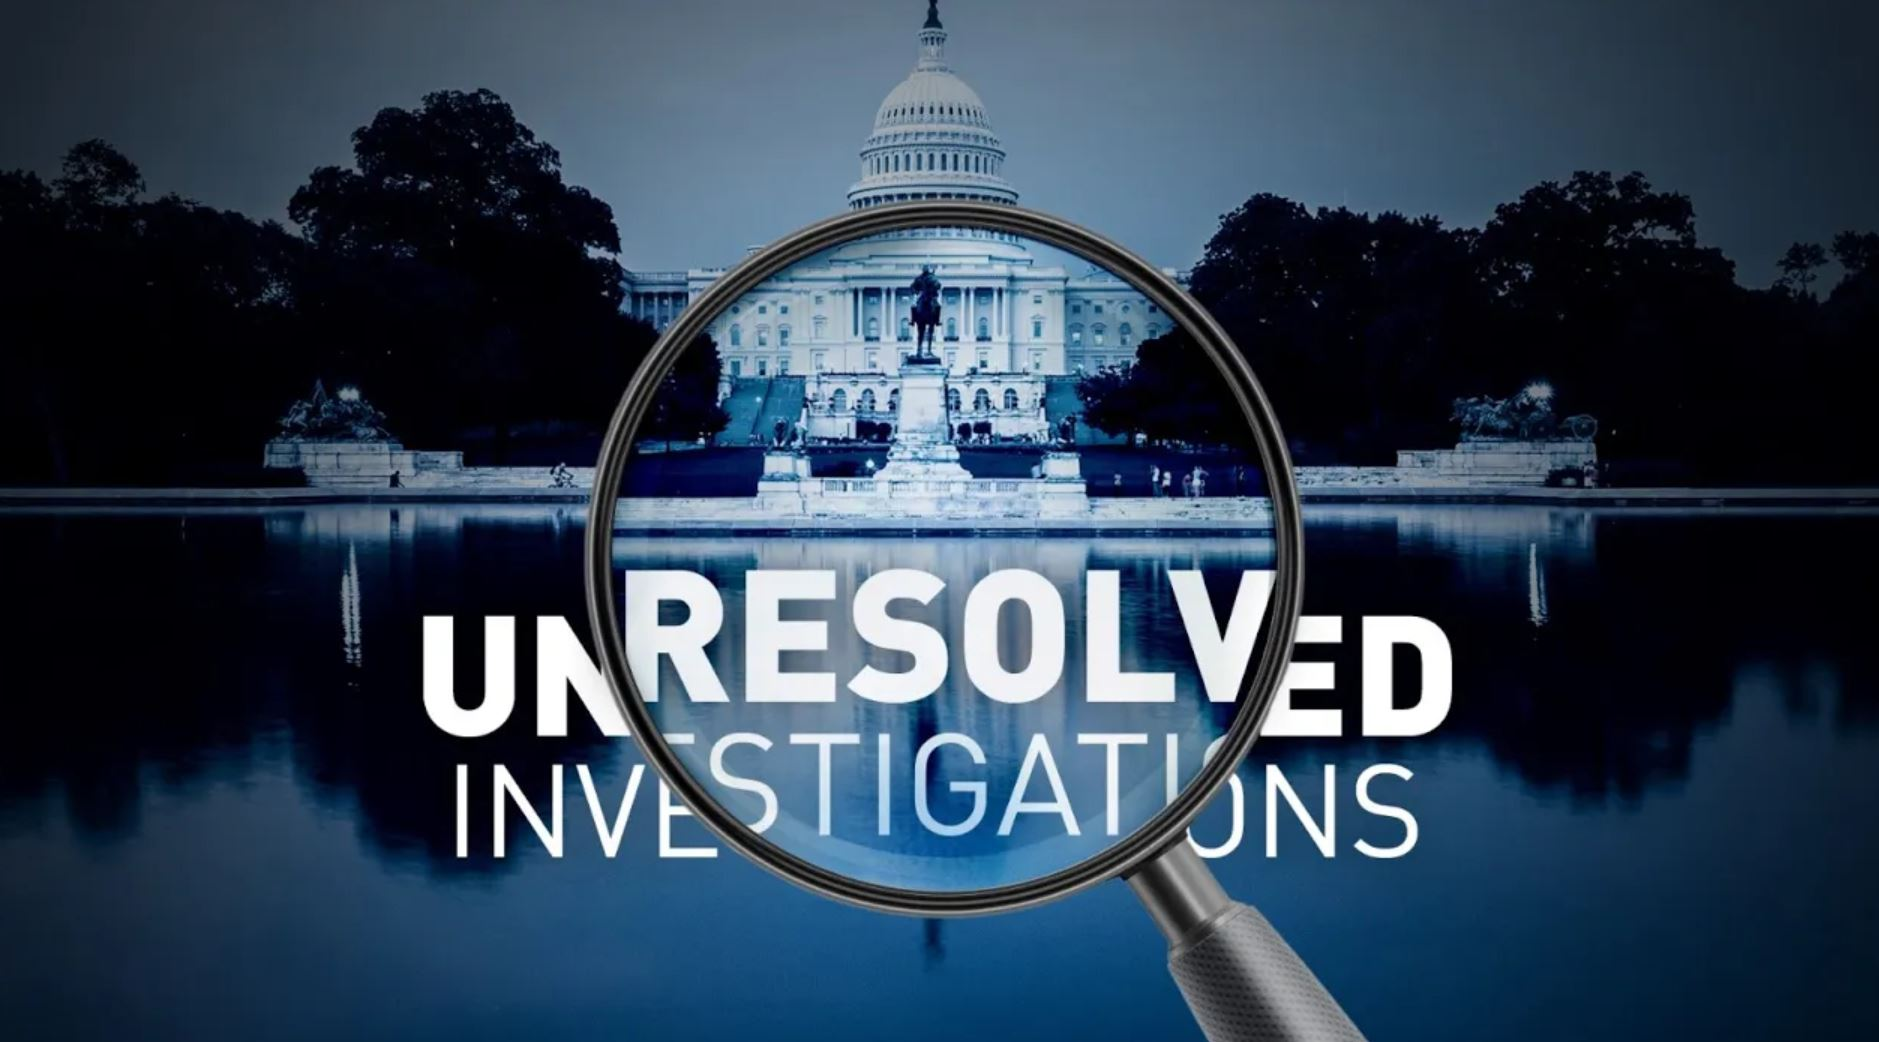 Senate Homeland Security and Gov't Affairs Committees Investigate Illegal Spy Operations under Obama and Trump Admins (Full Measure)